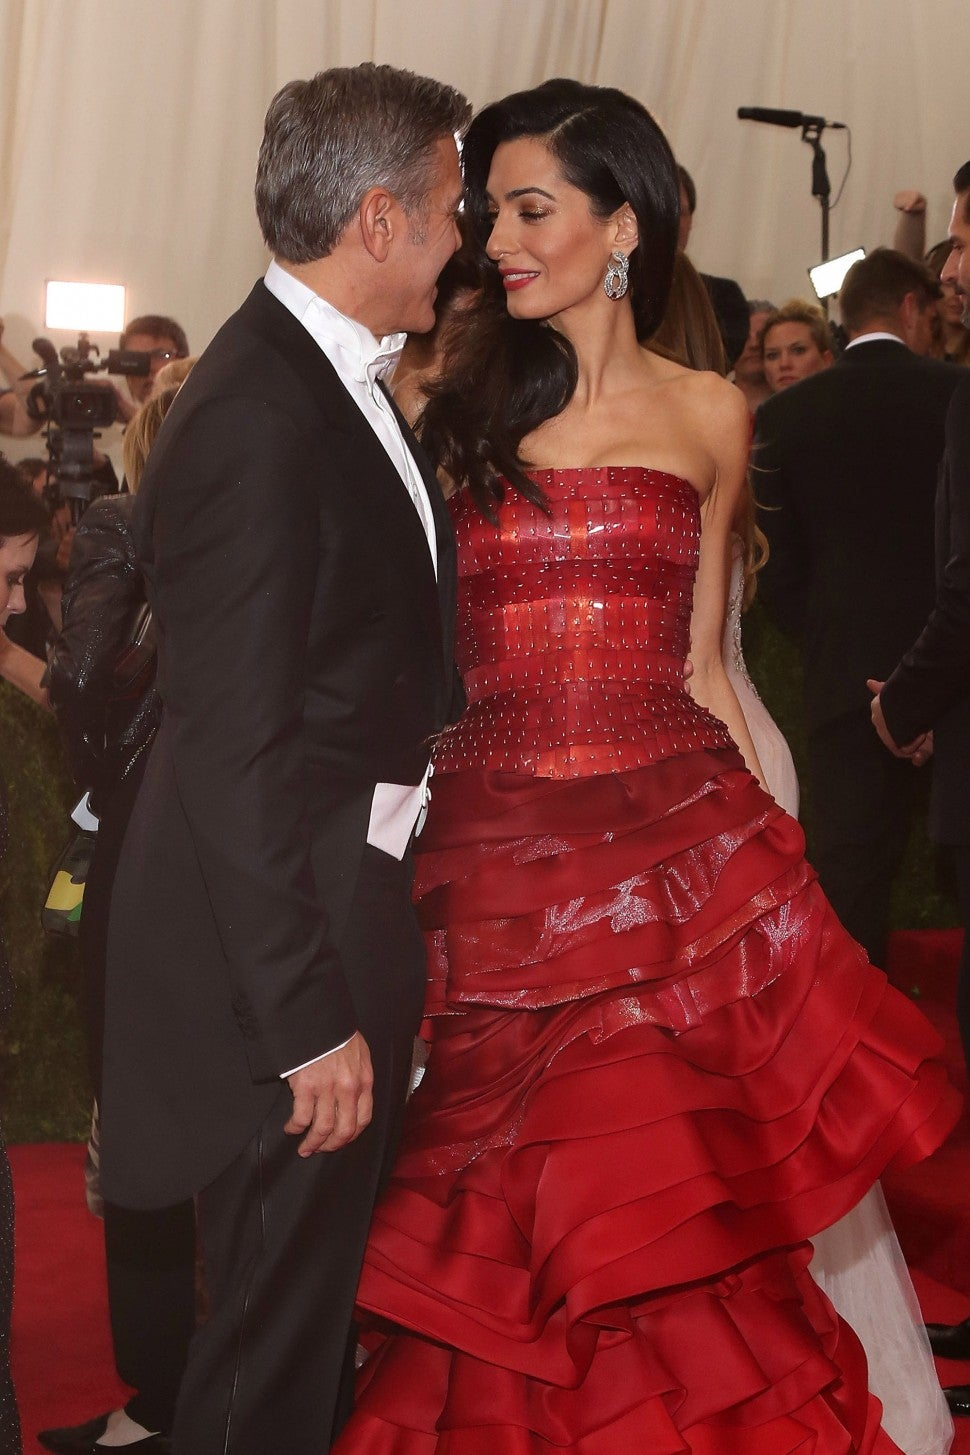 George Clooney and Amal Clooney attend